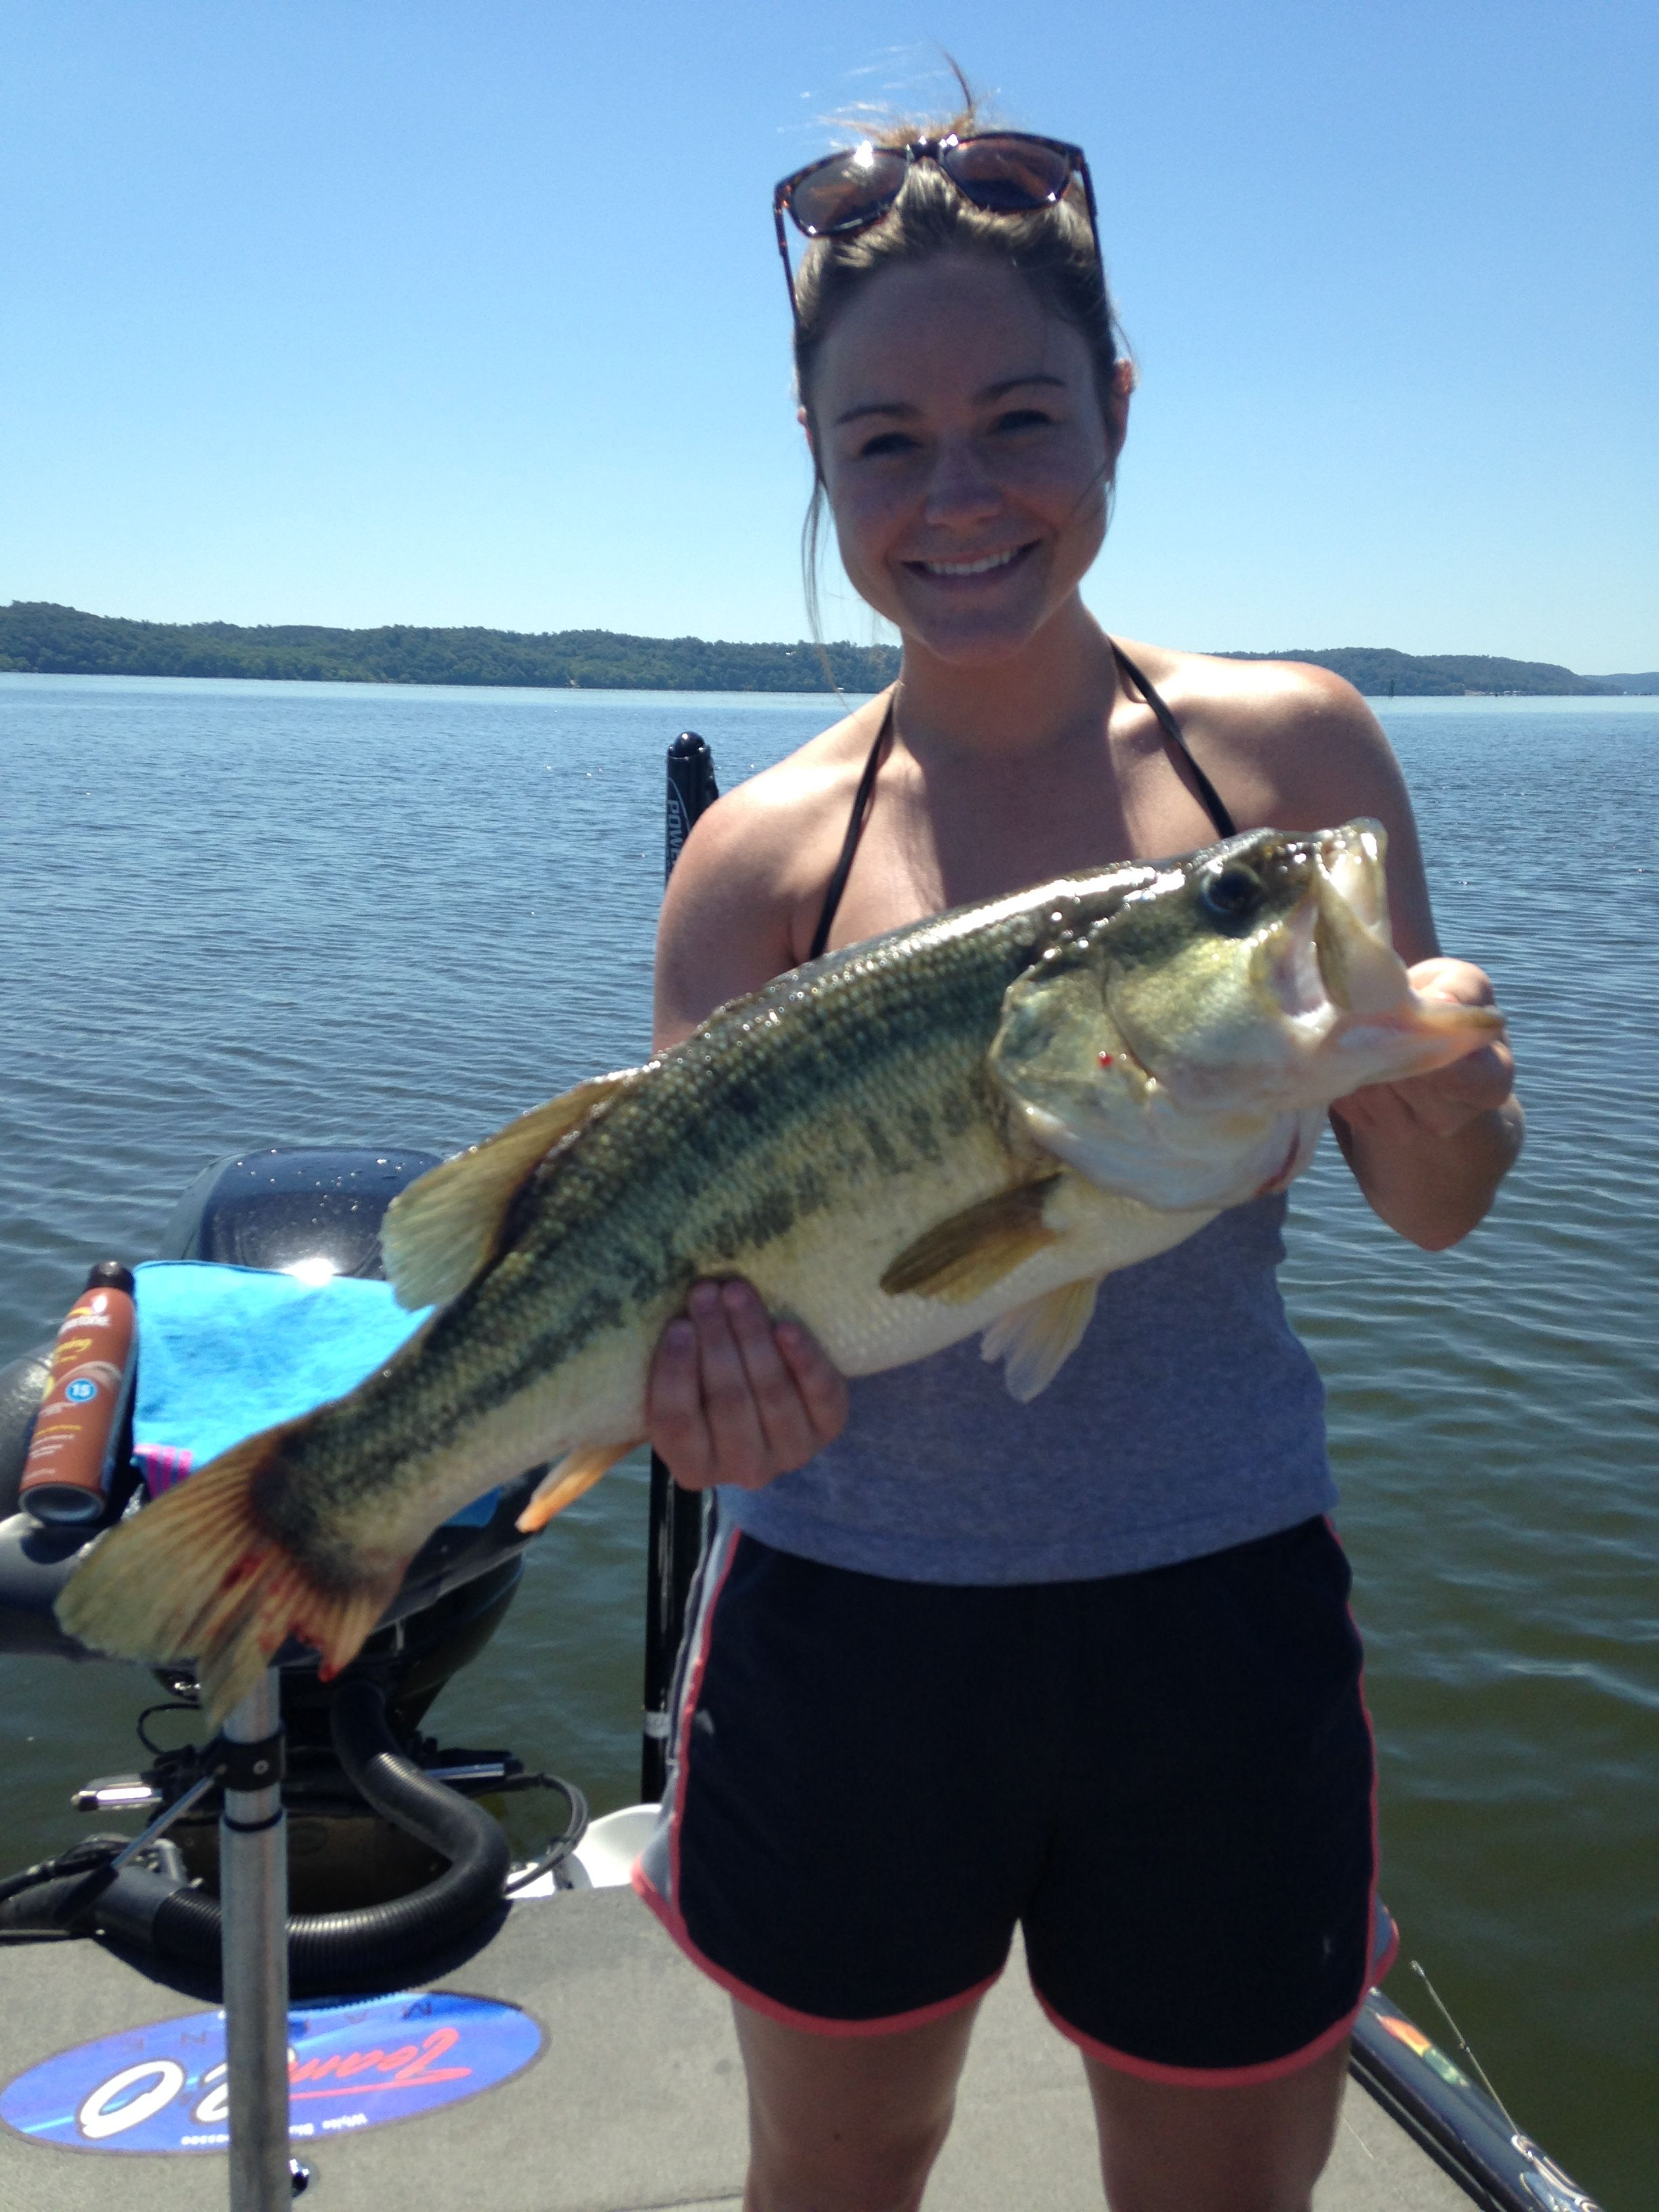 Kentucky lake guide 7 8 16 1 for Fishing report kentucky lake